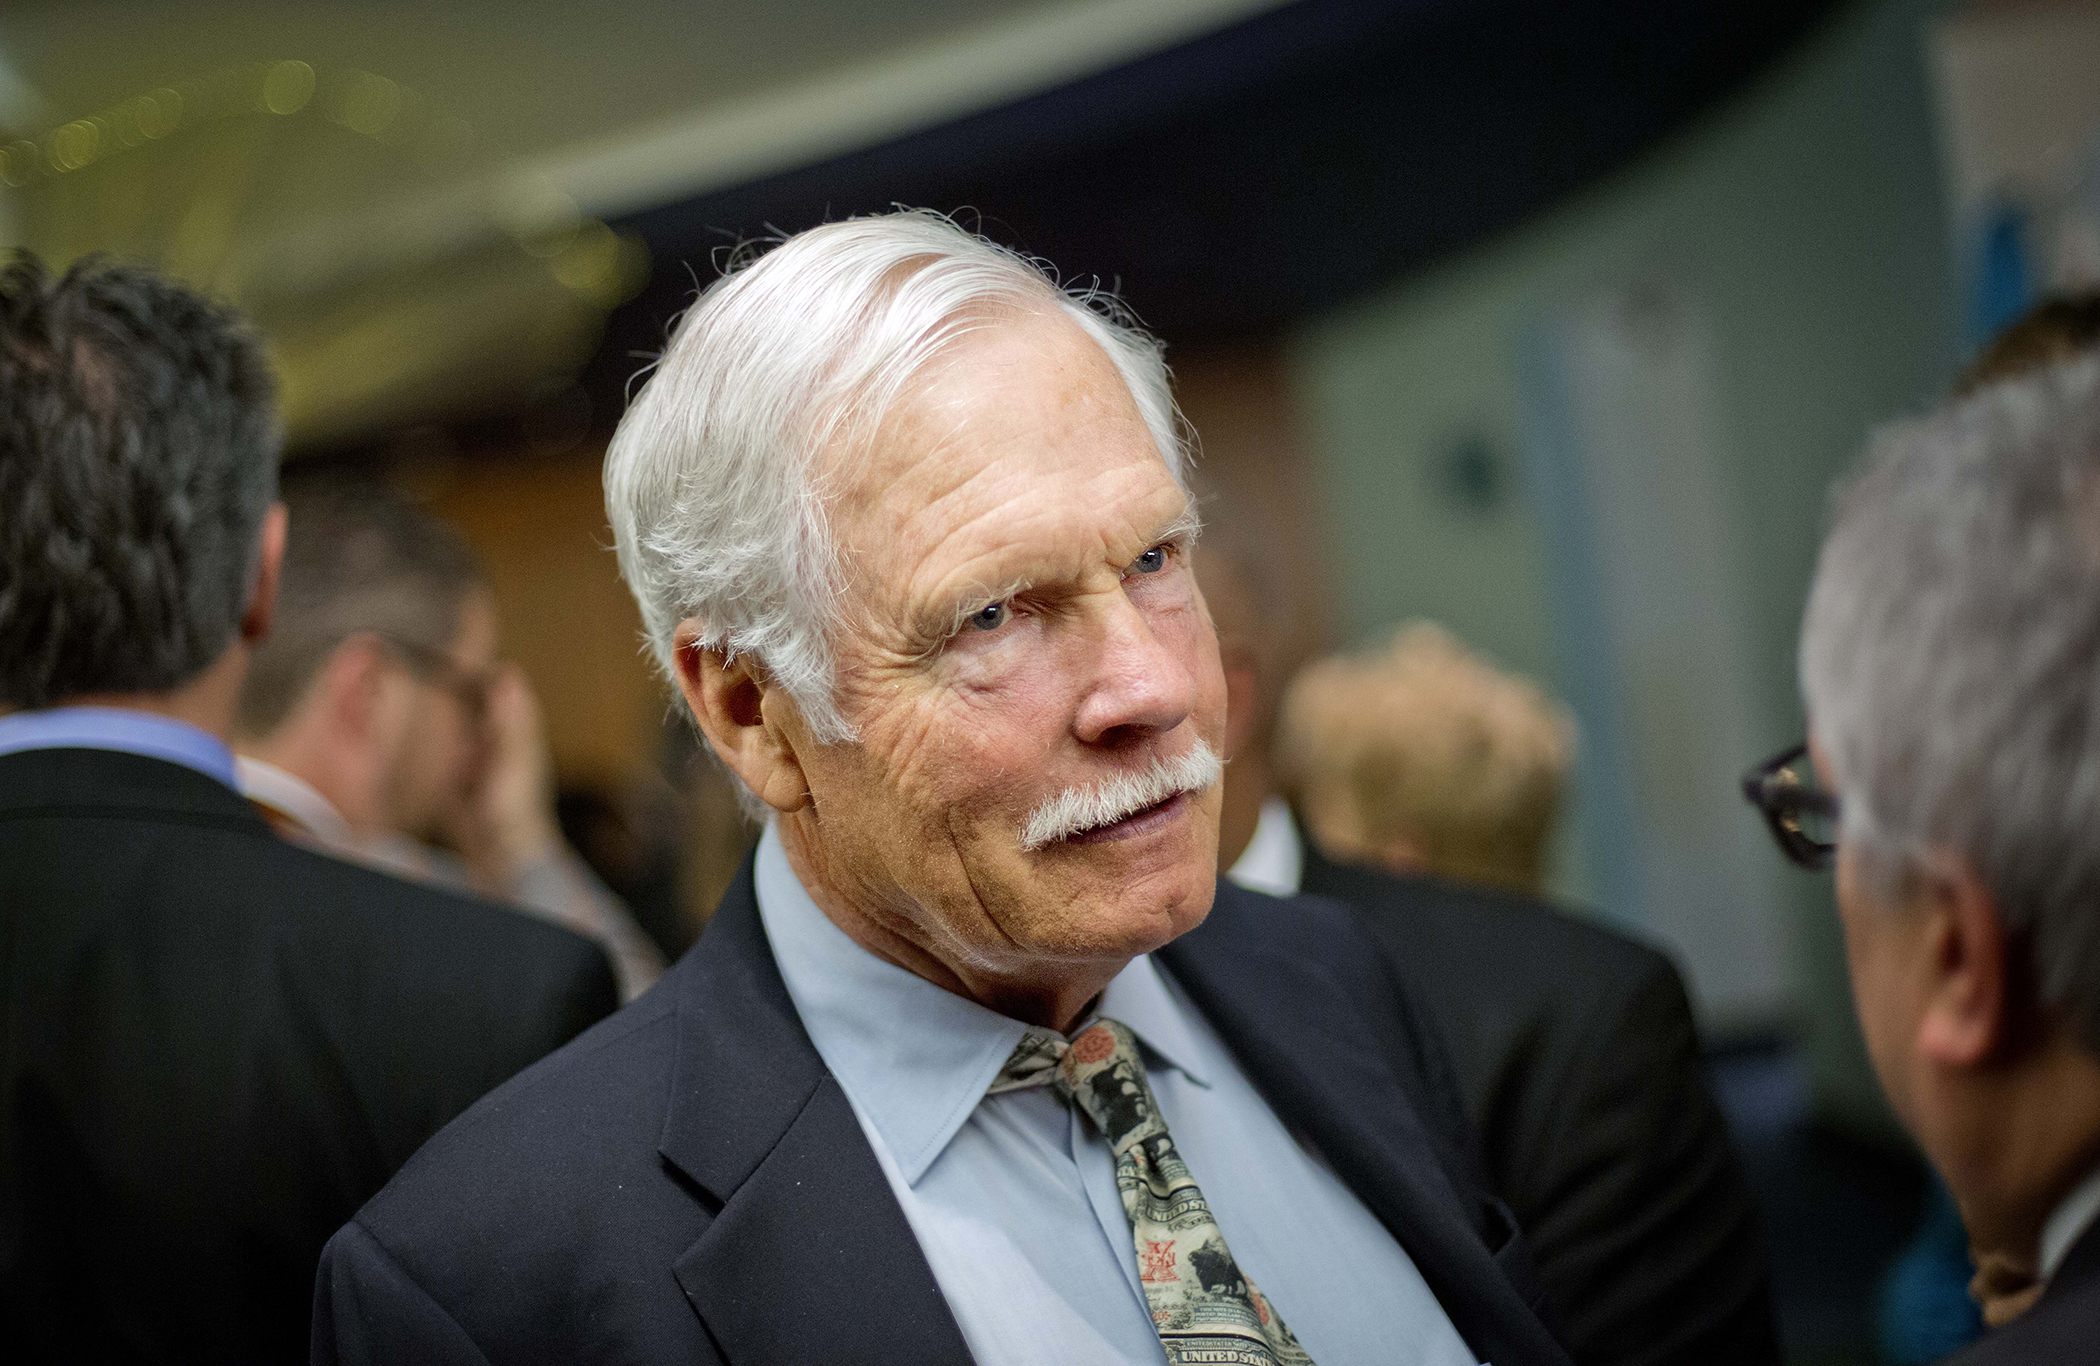 In this Friday, Dec. 6, 2013 photo, Ted Turner talks with guests at the Captain Planet Foundation benefit gala in Atlanta.